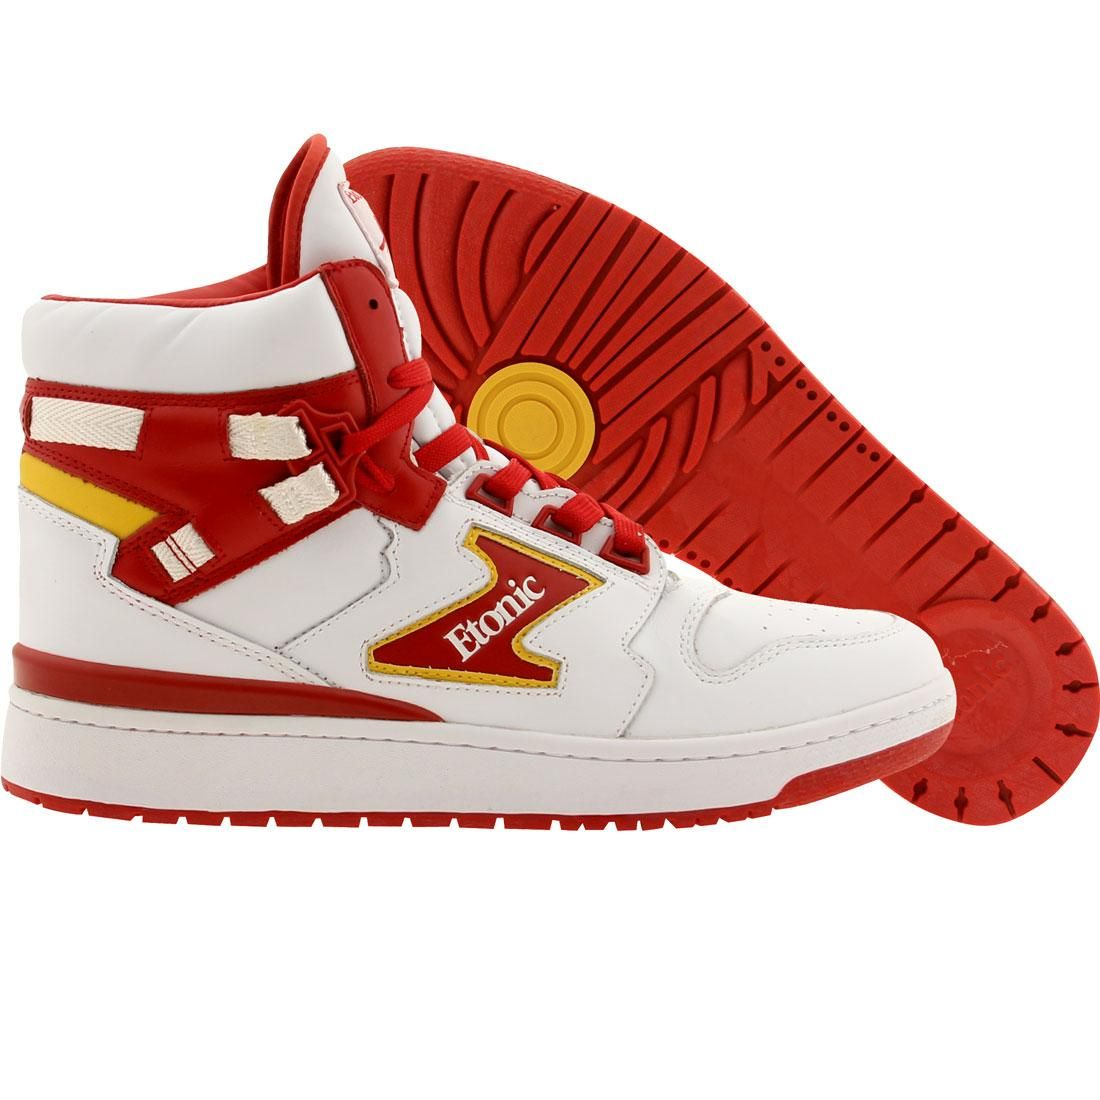 Etonic The Dream 1 - Hakeem Olajuwon (white   red) Shoes EML14F-01 ... 40ab2a4c4228